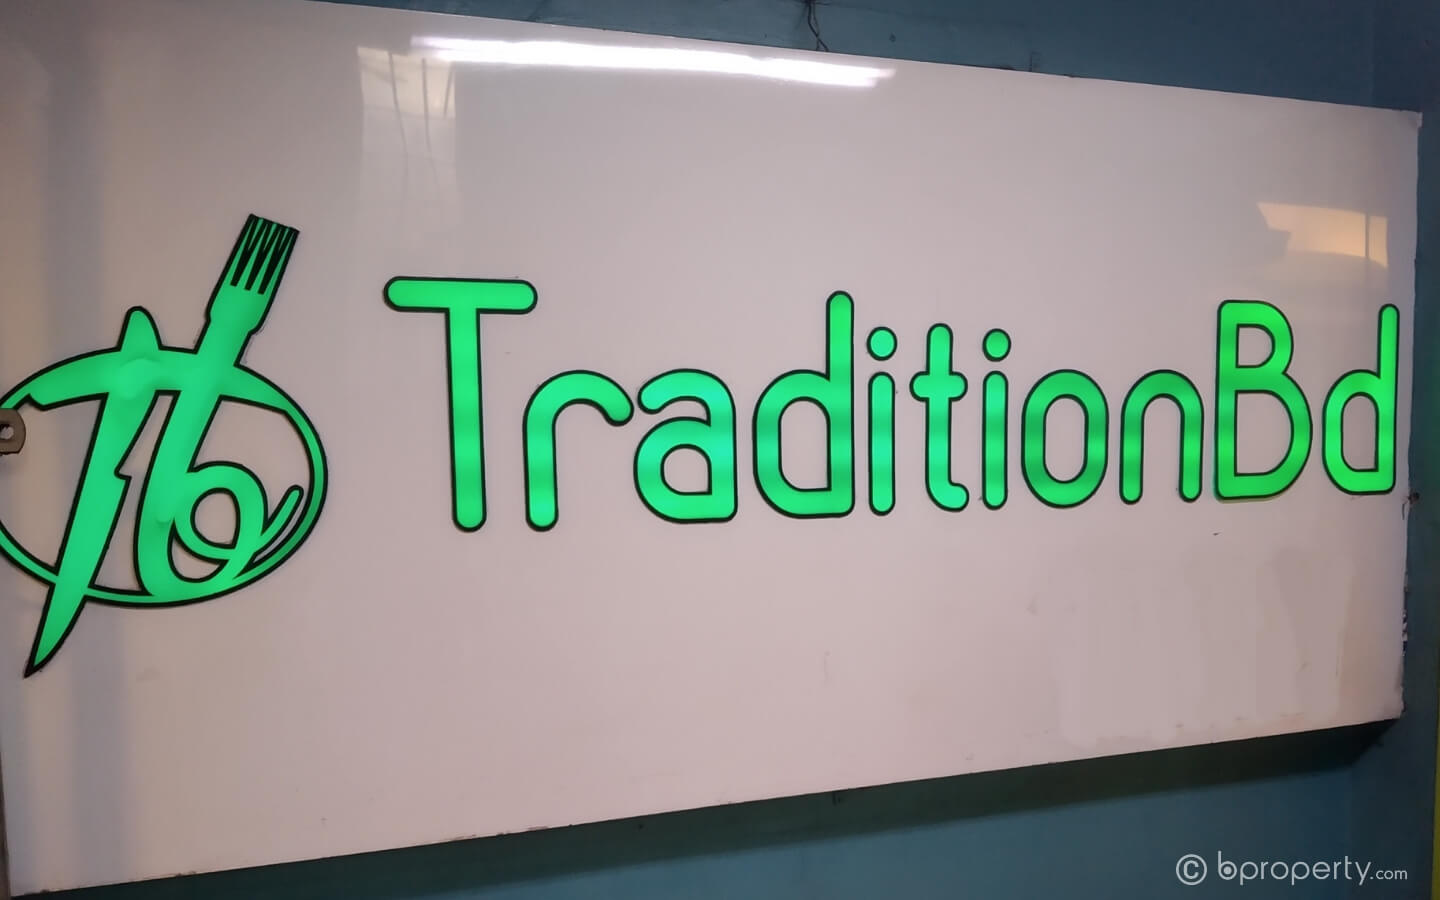 Tradition BD's delicious food make them one of the best Khilgaon Restaurants